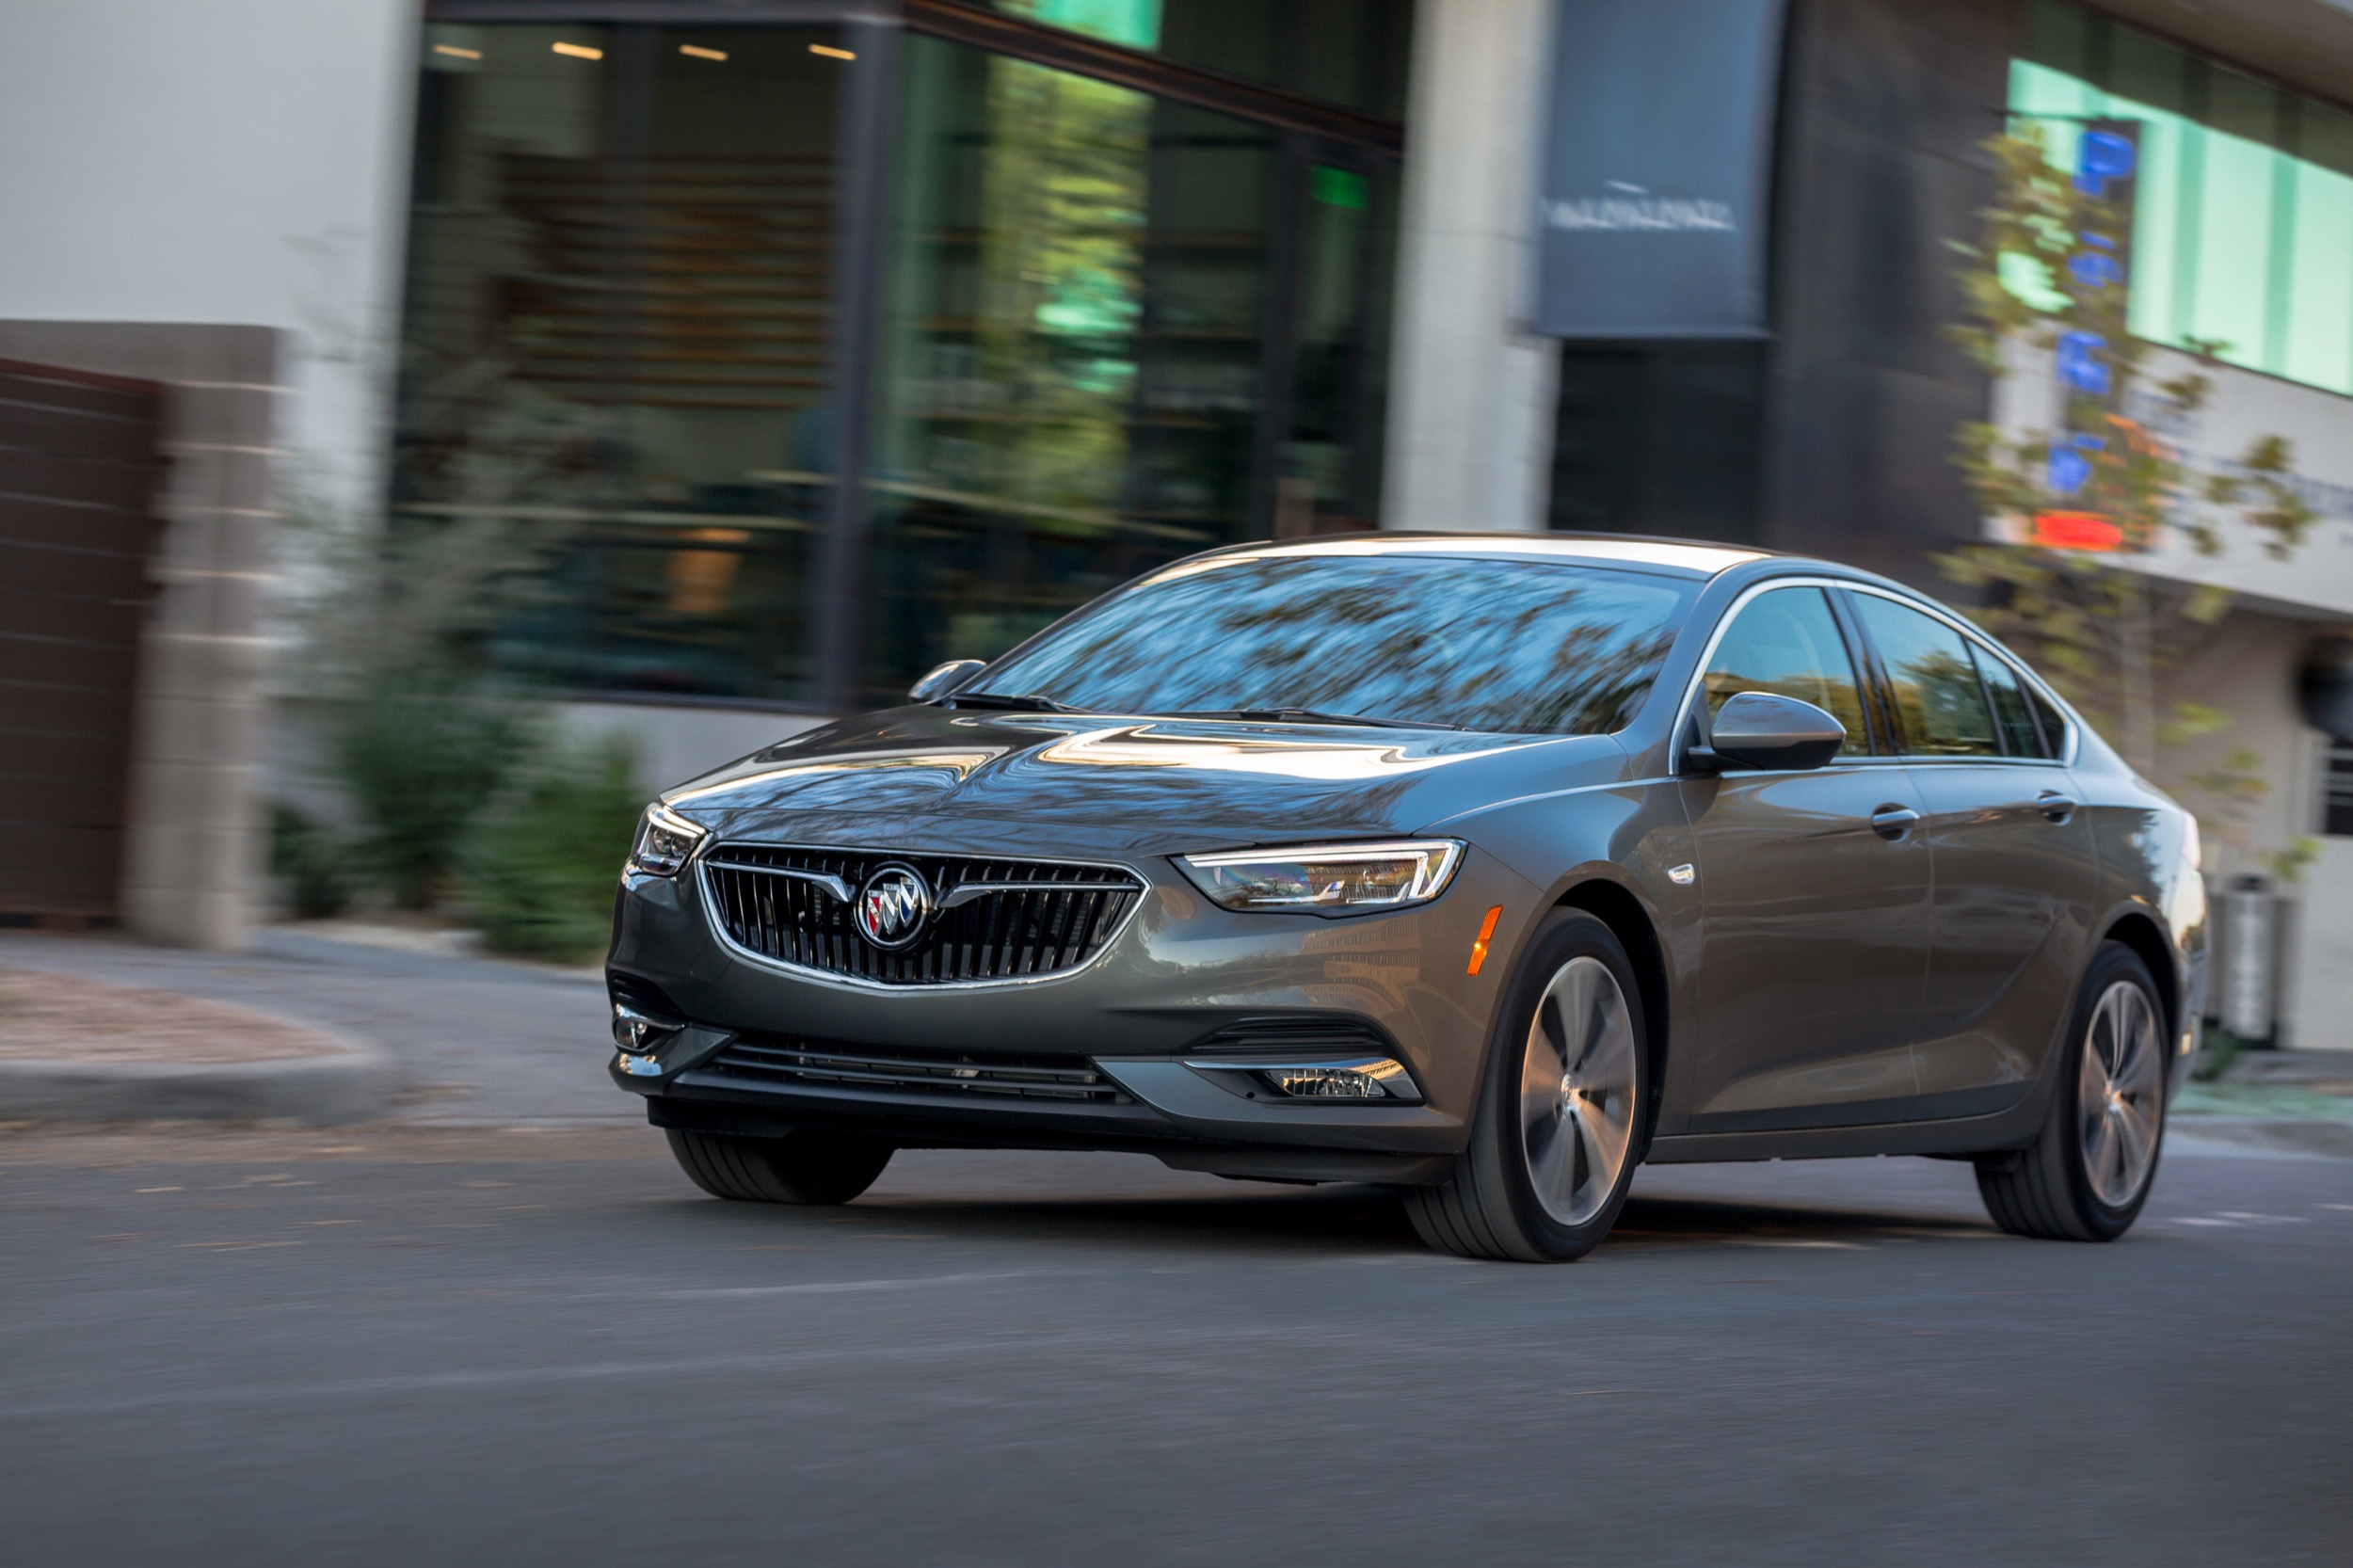 Gm Discontinues One Trim Level Of Buick Regal Sportback | Gm 2021 Buick Regal Lease Deals, Exterior Colors, Horsepower